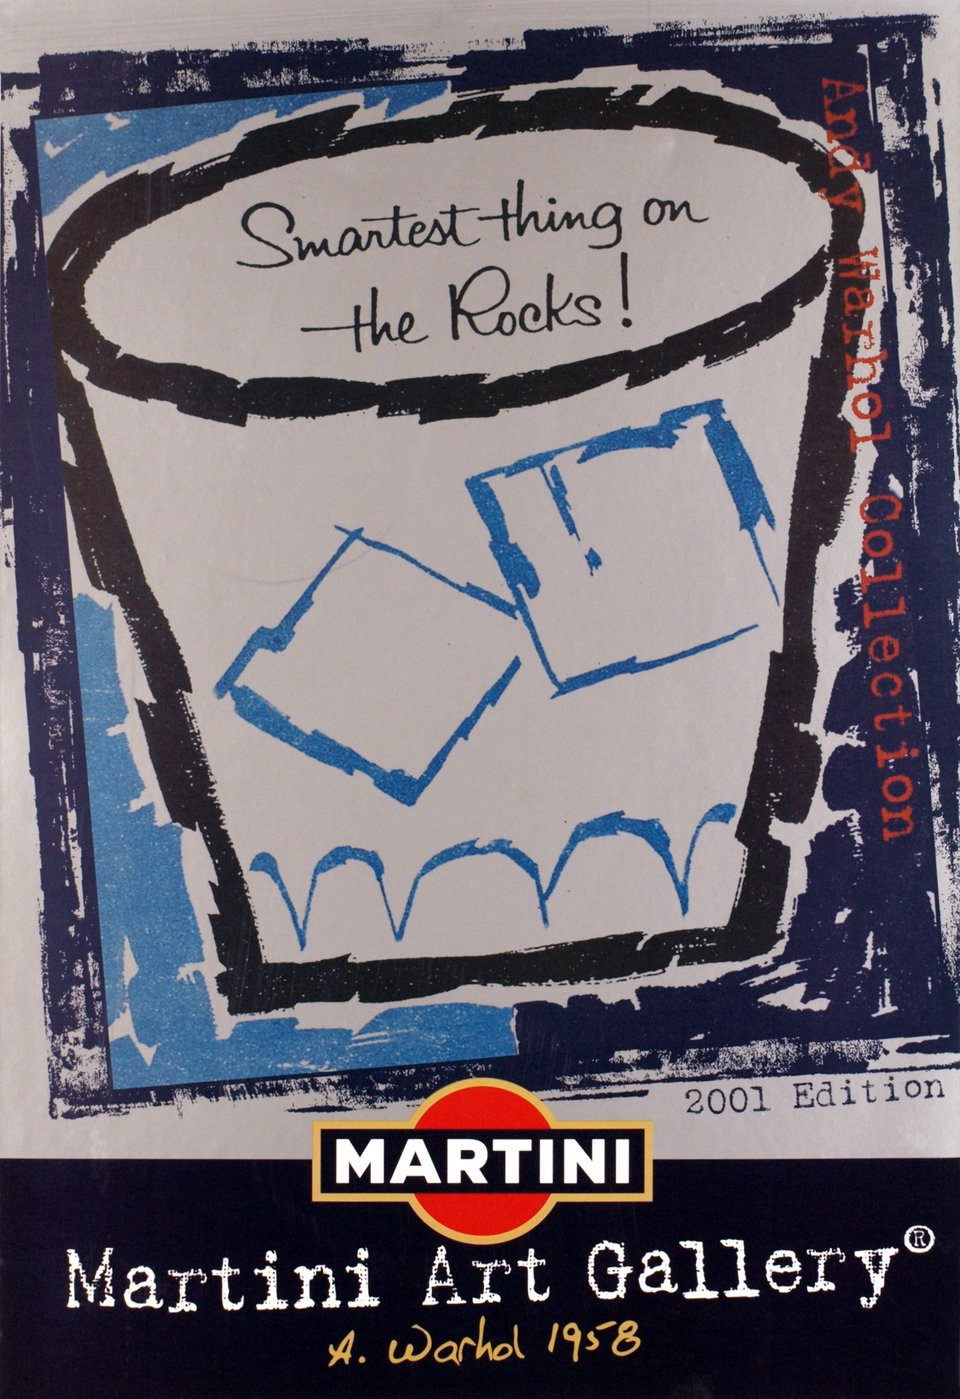 Martini Art Gallery, Andy Warhol 1958, edition 2001 – Affiche ancienne – Andy WARHOL – 2001